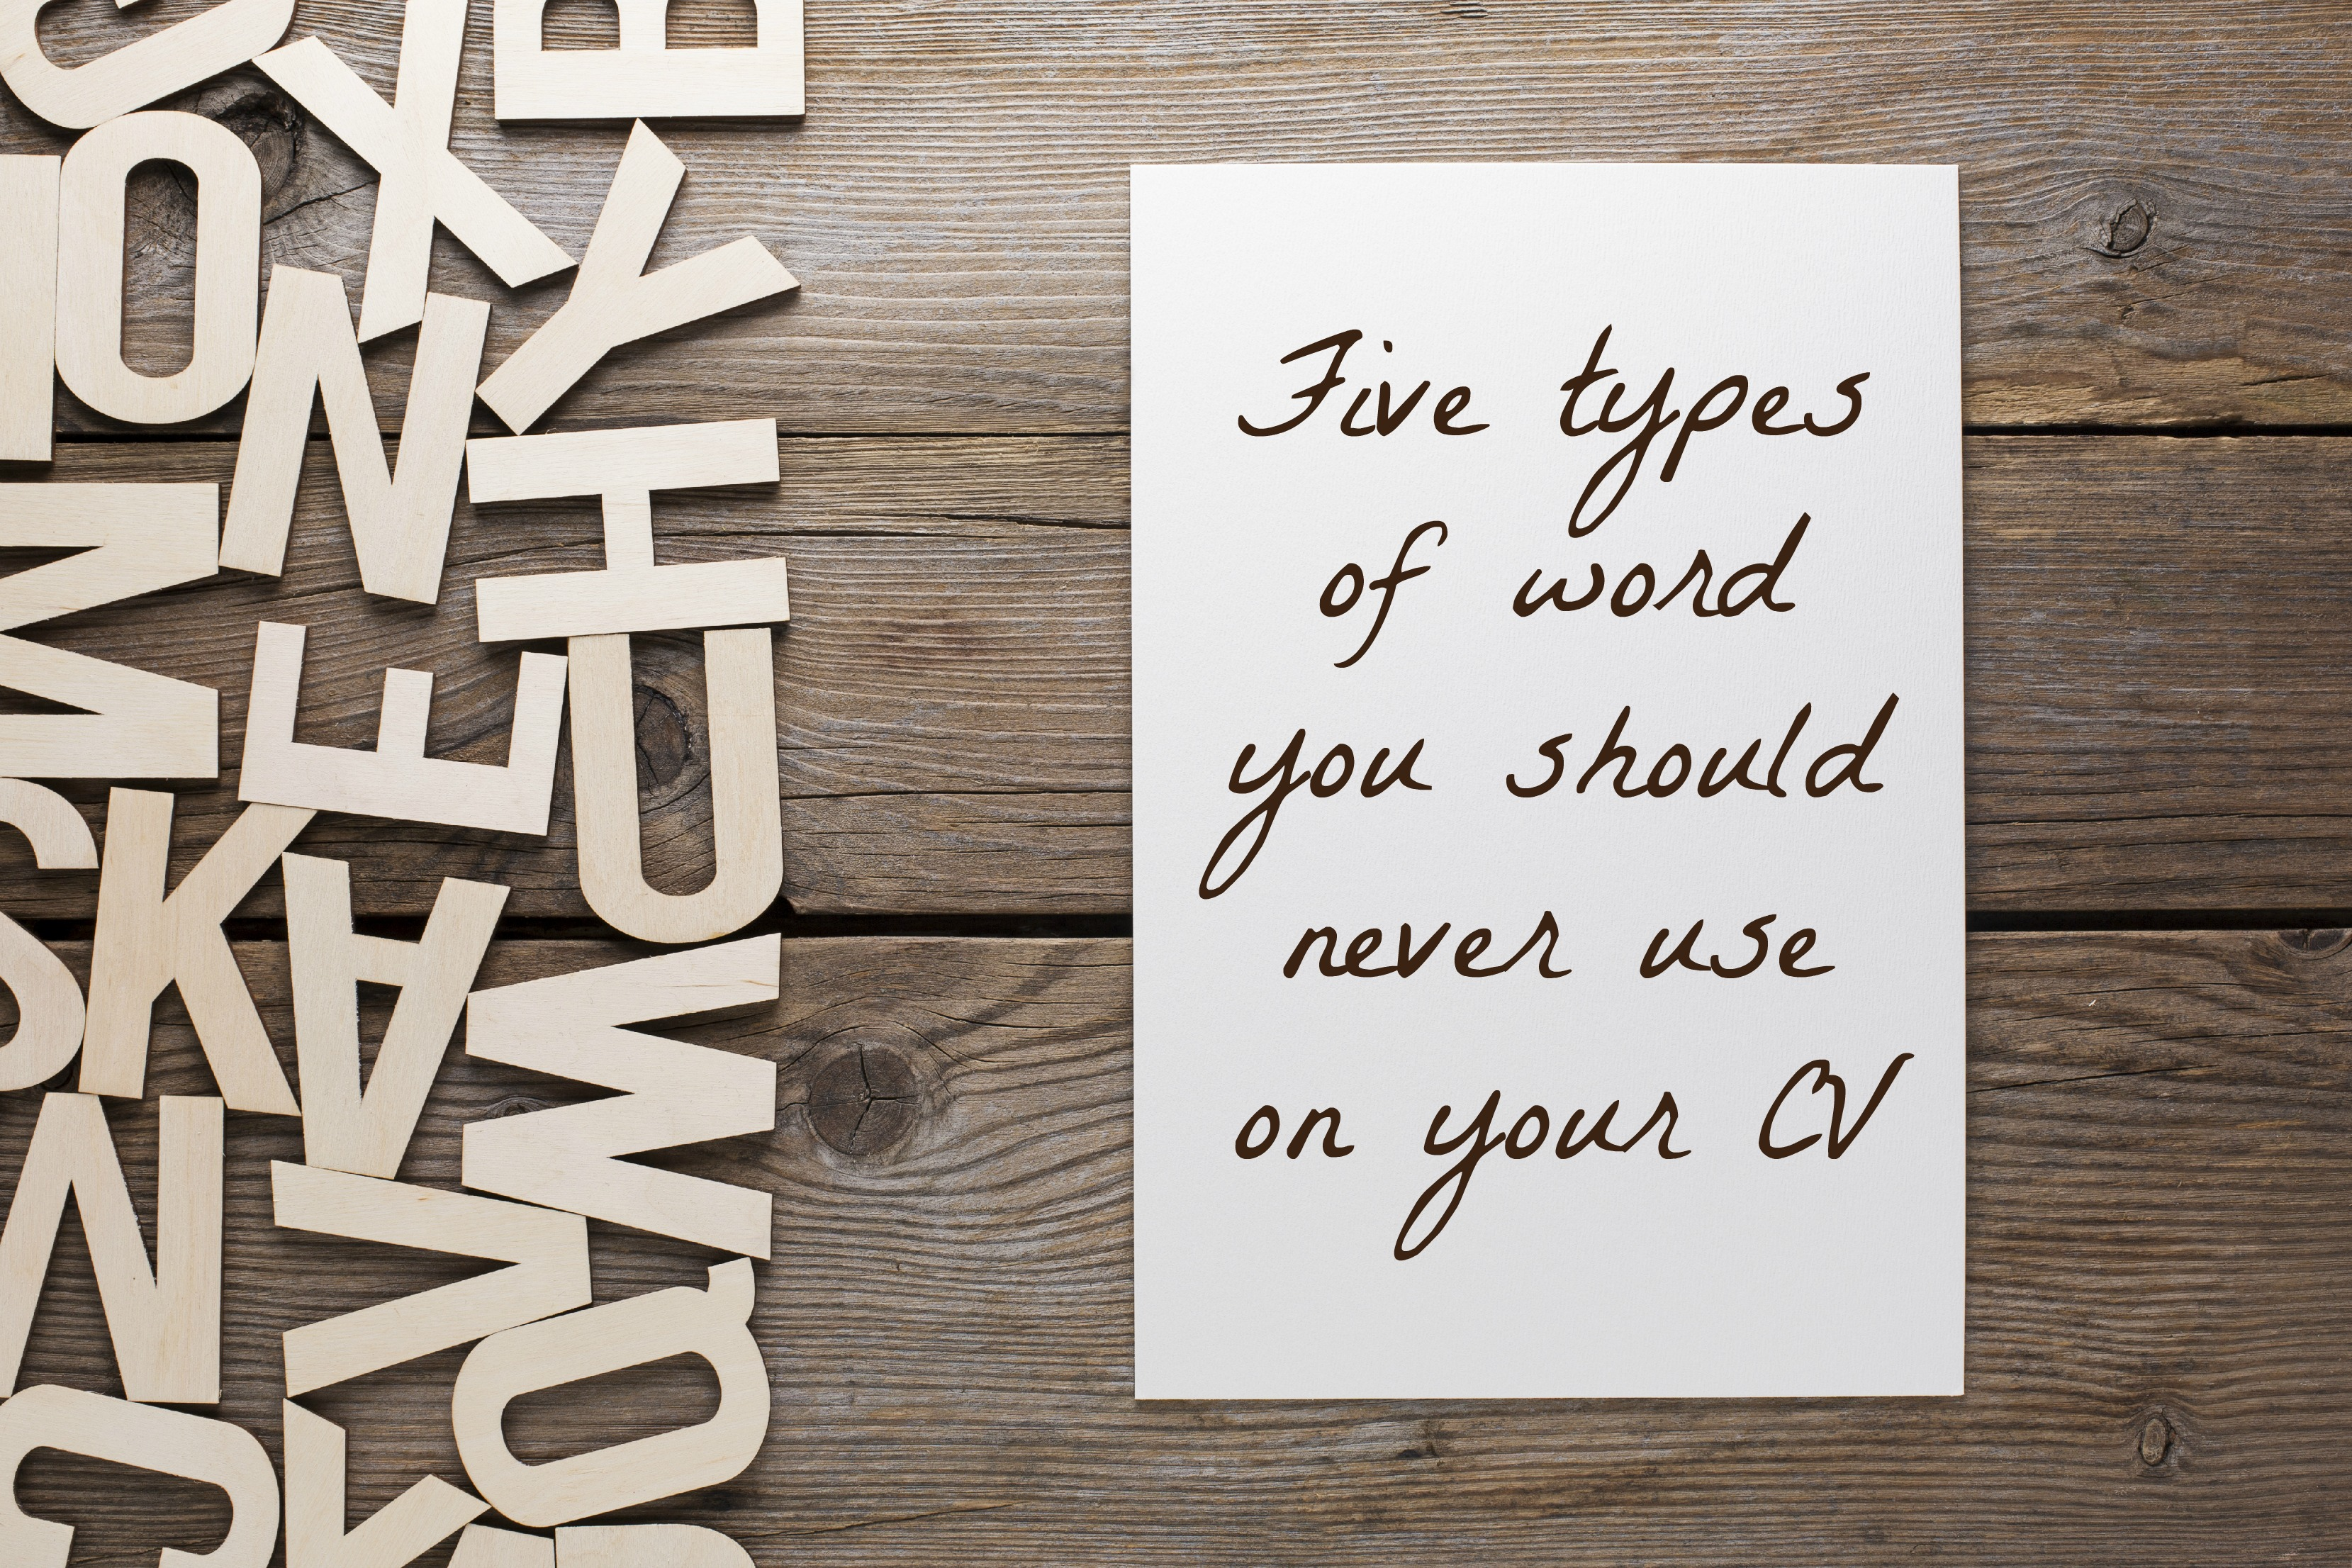 5 types of word you should never use on your cv